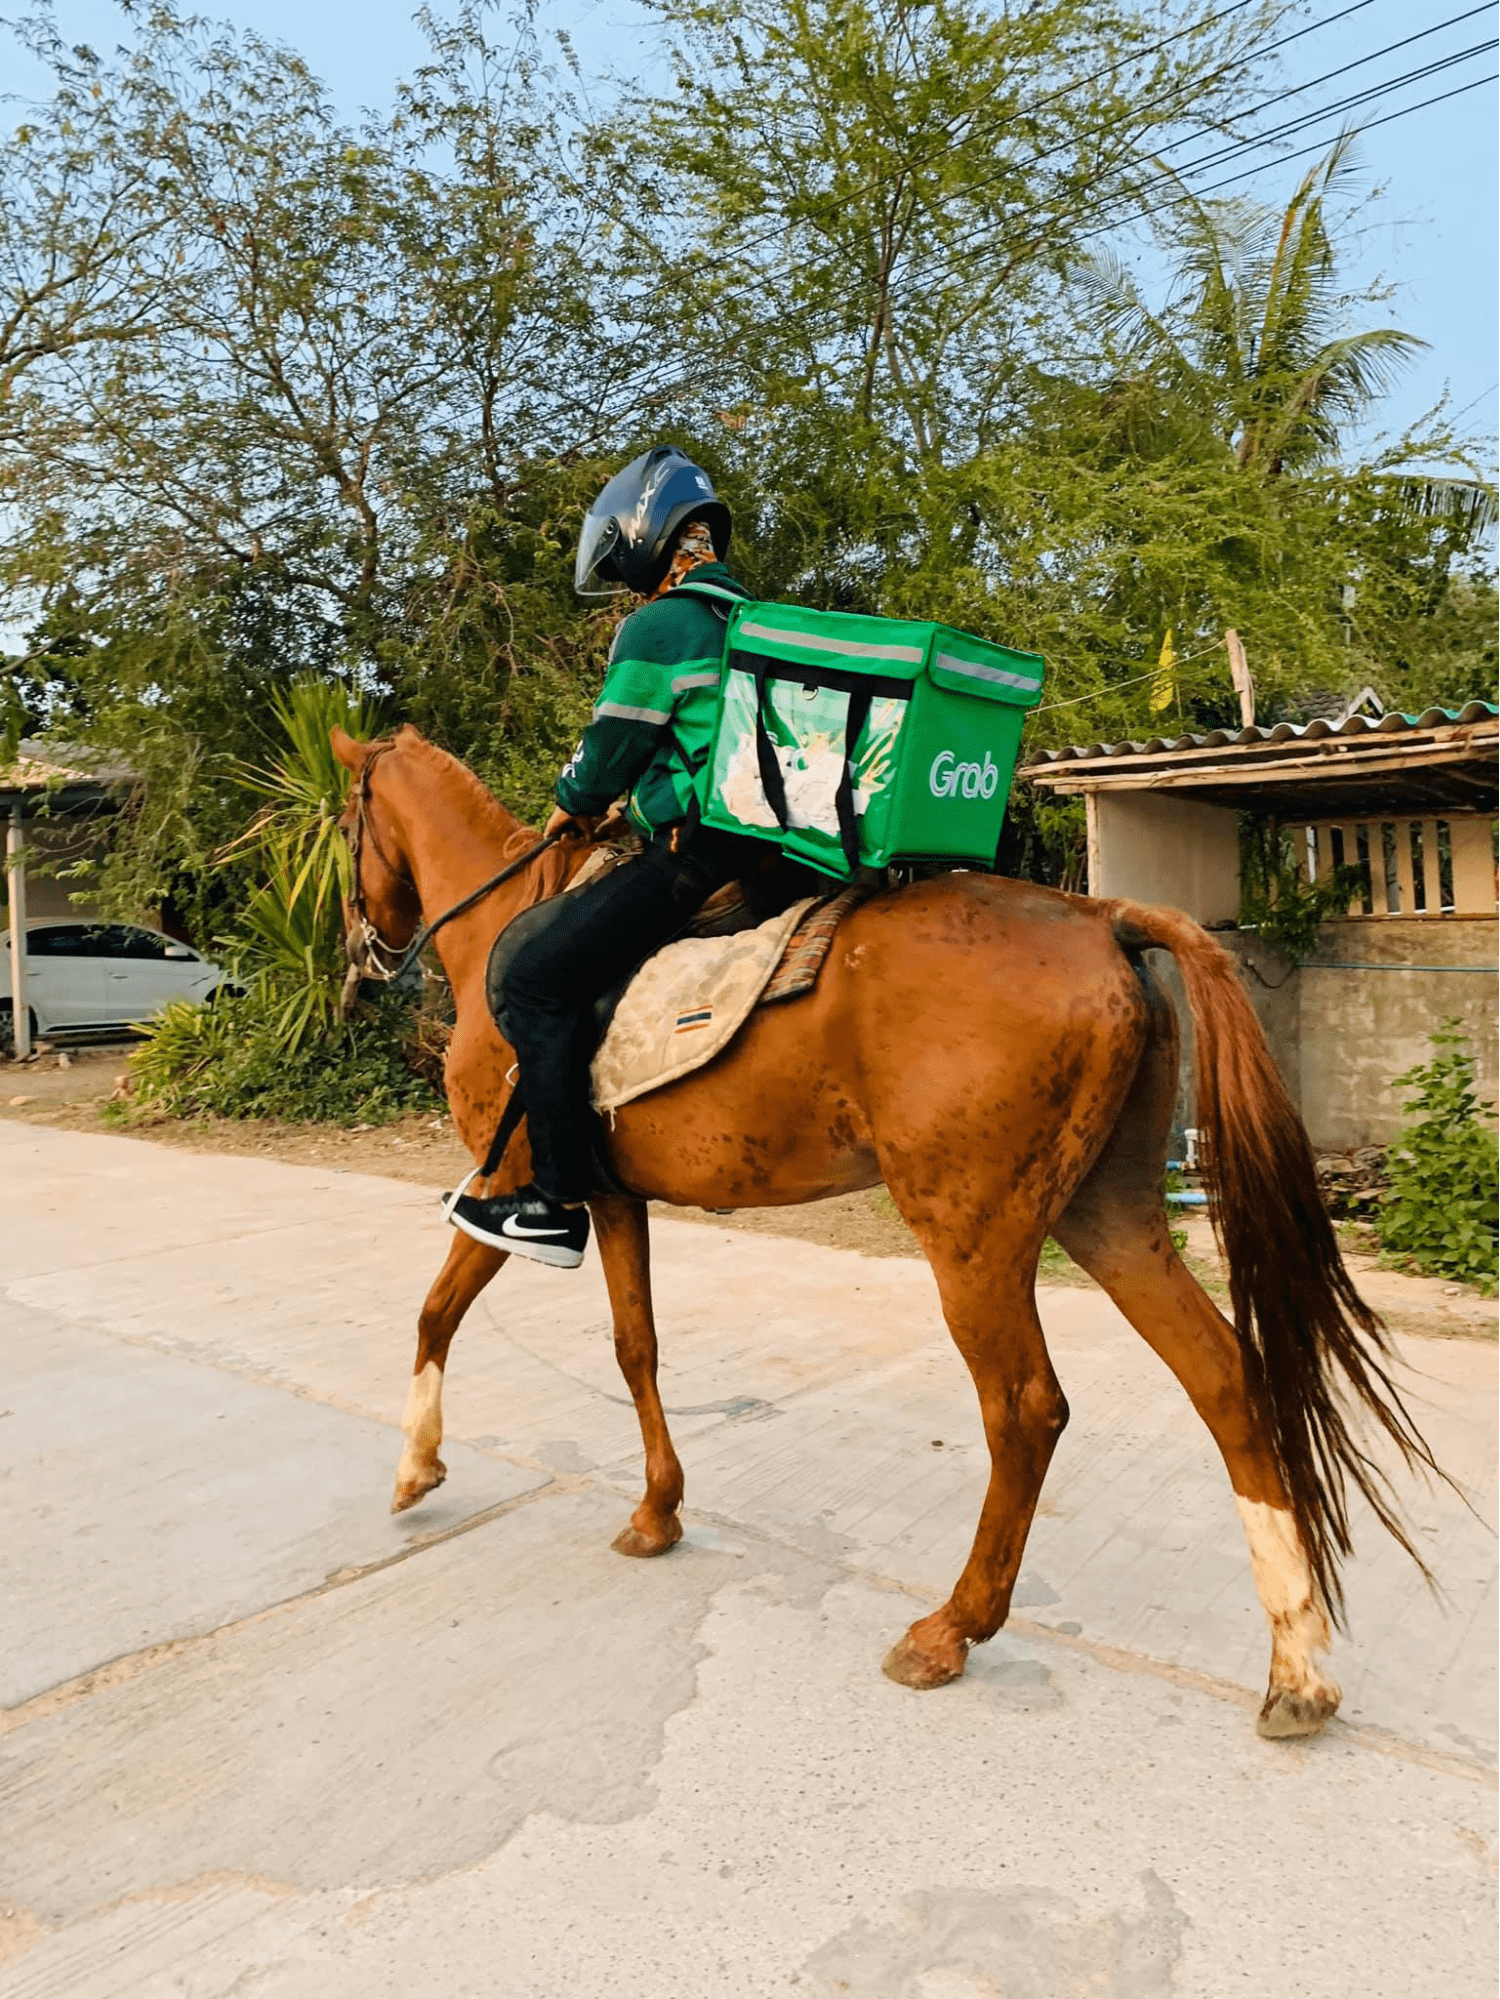 Thai GrabFood delivery man rides a horse